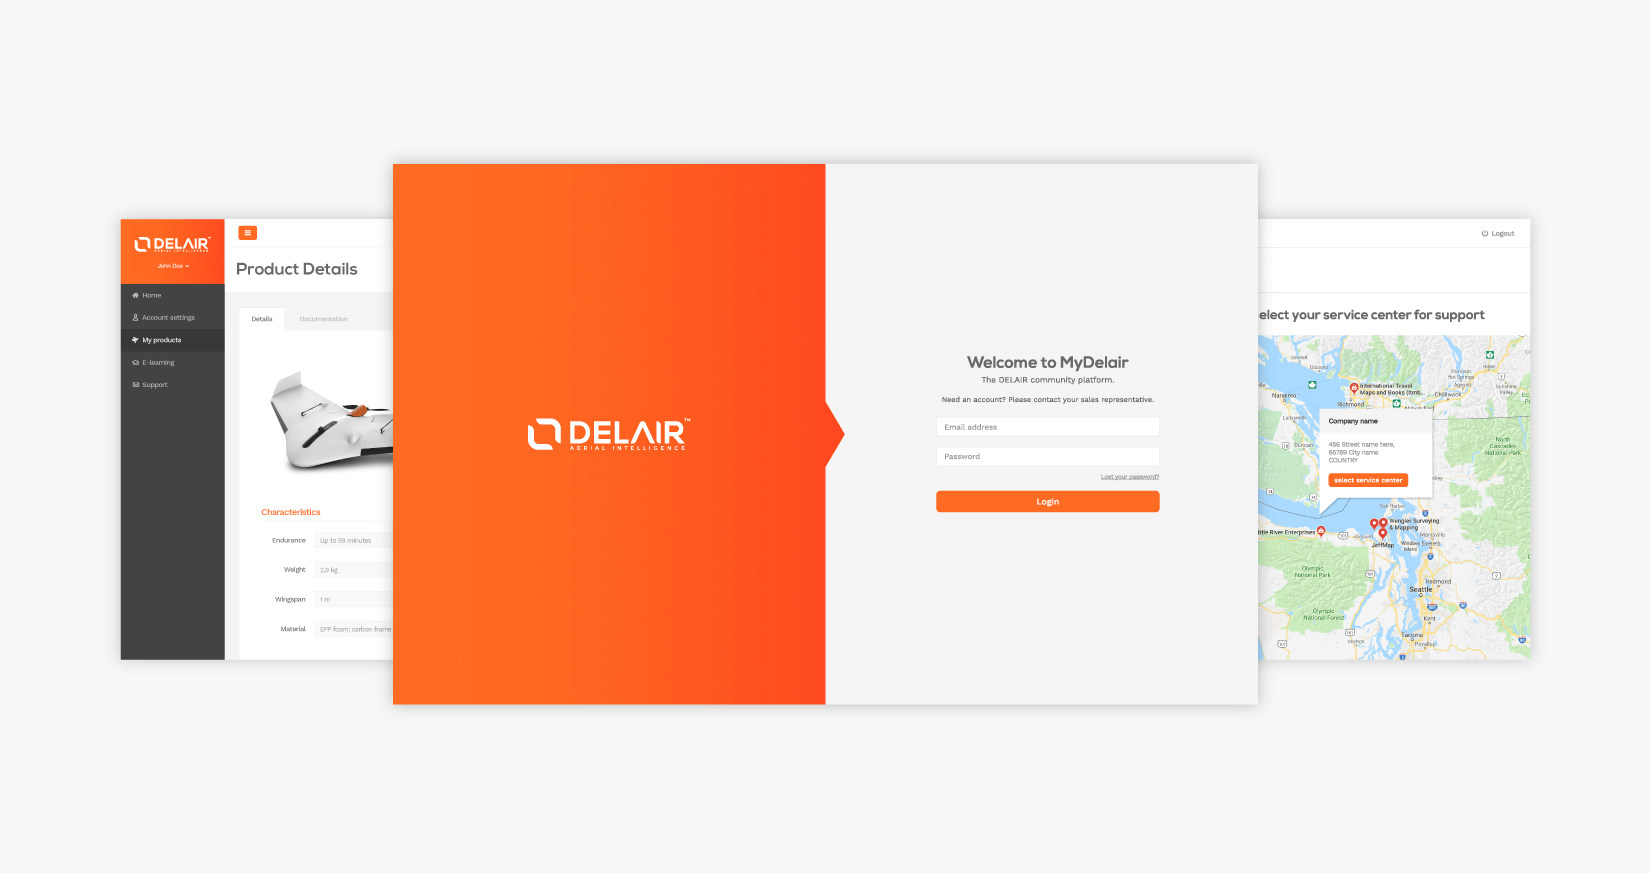 Delair - client of Tapat web agency and creative digital agency - UI UX user interface and experience design screens for web app mydelair